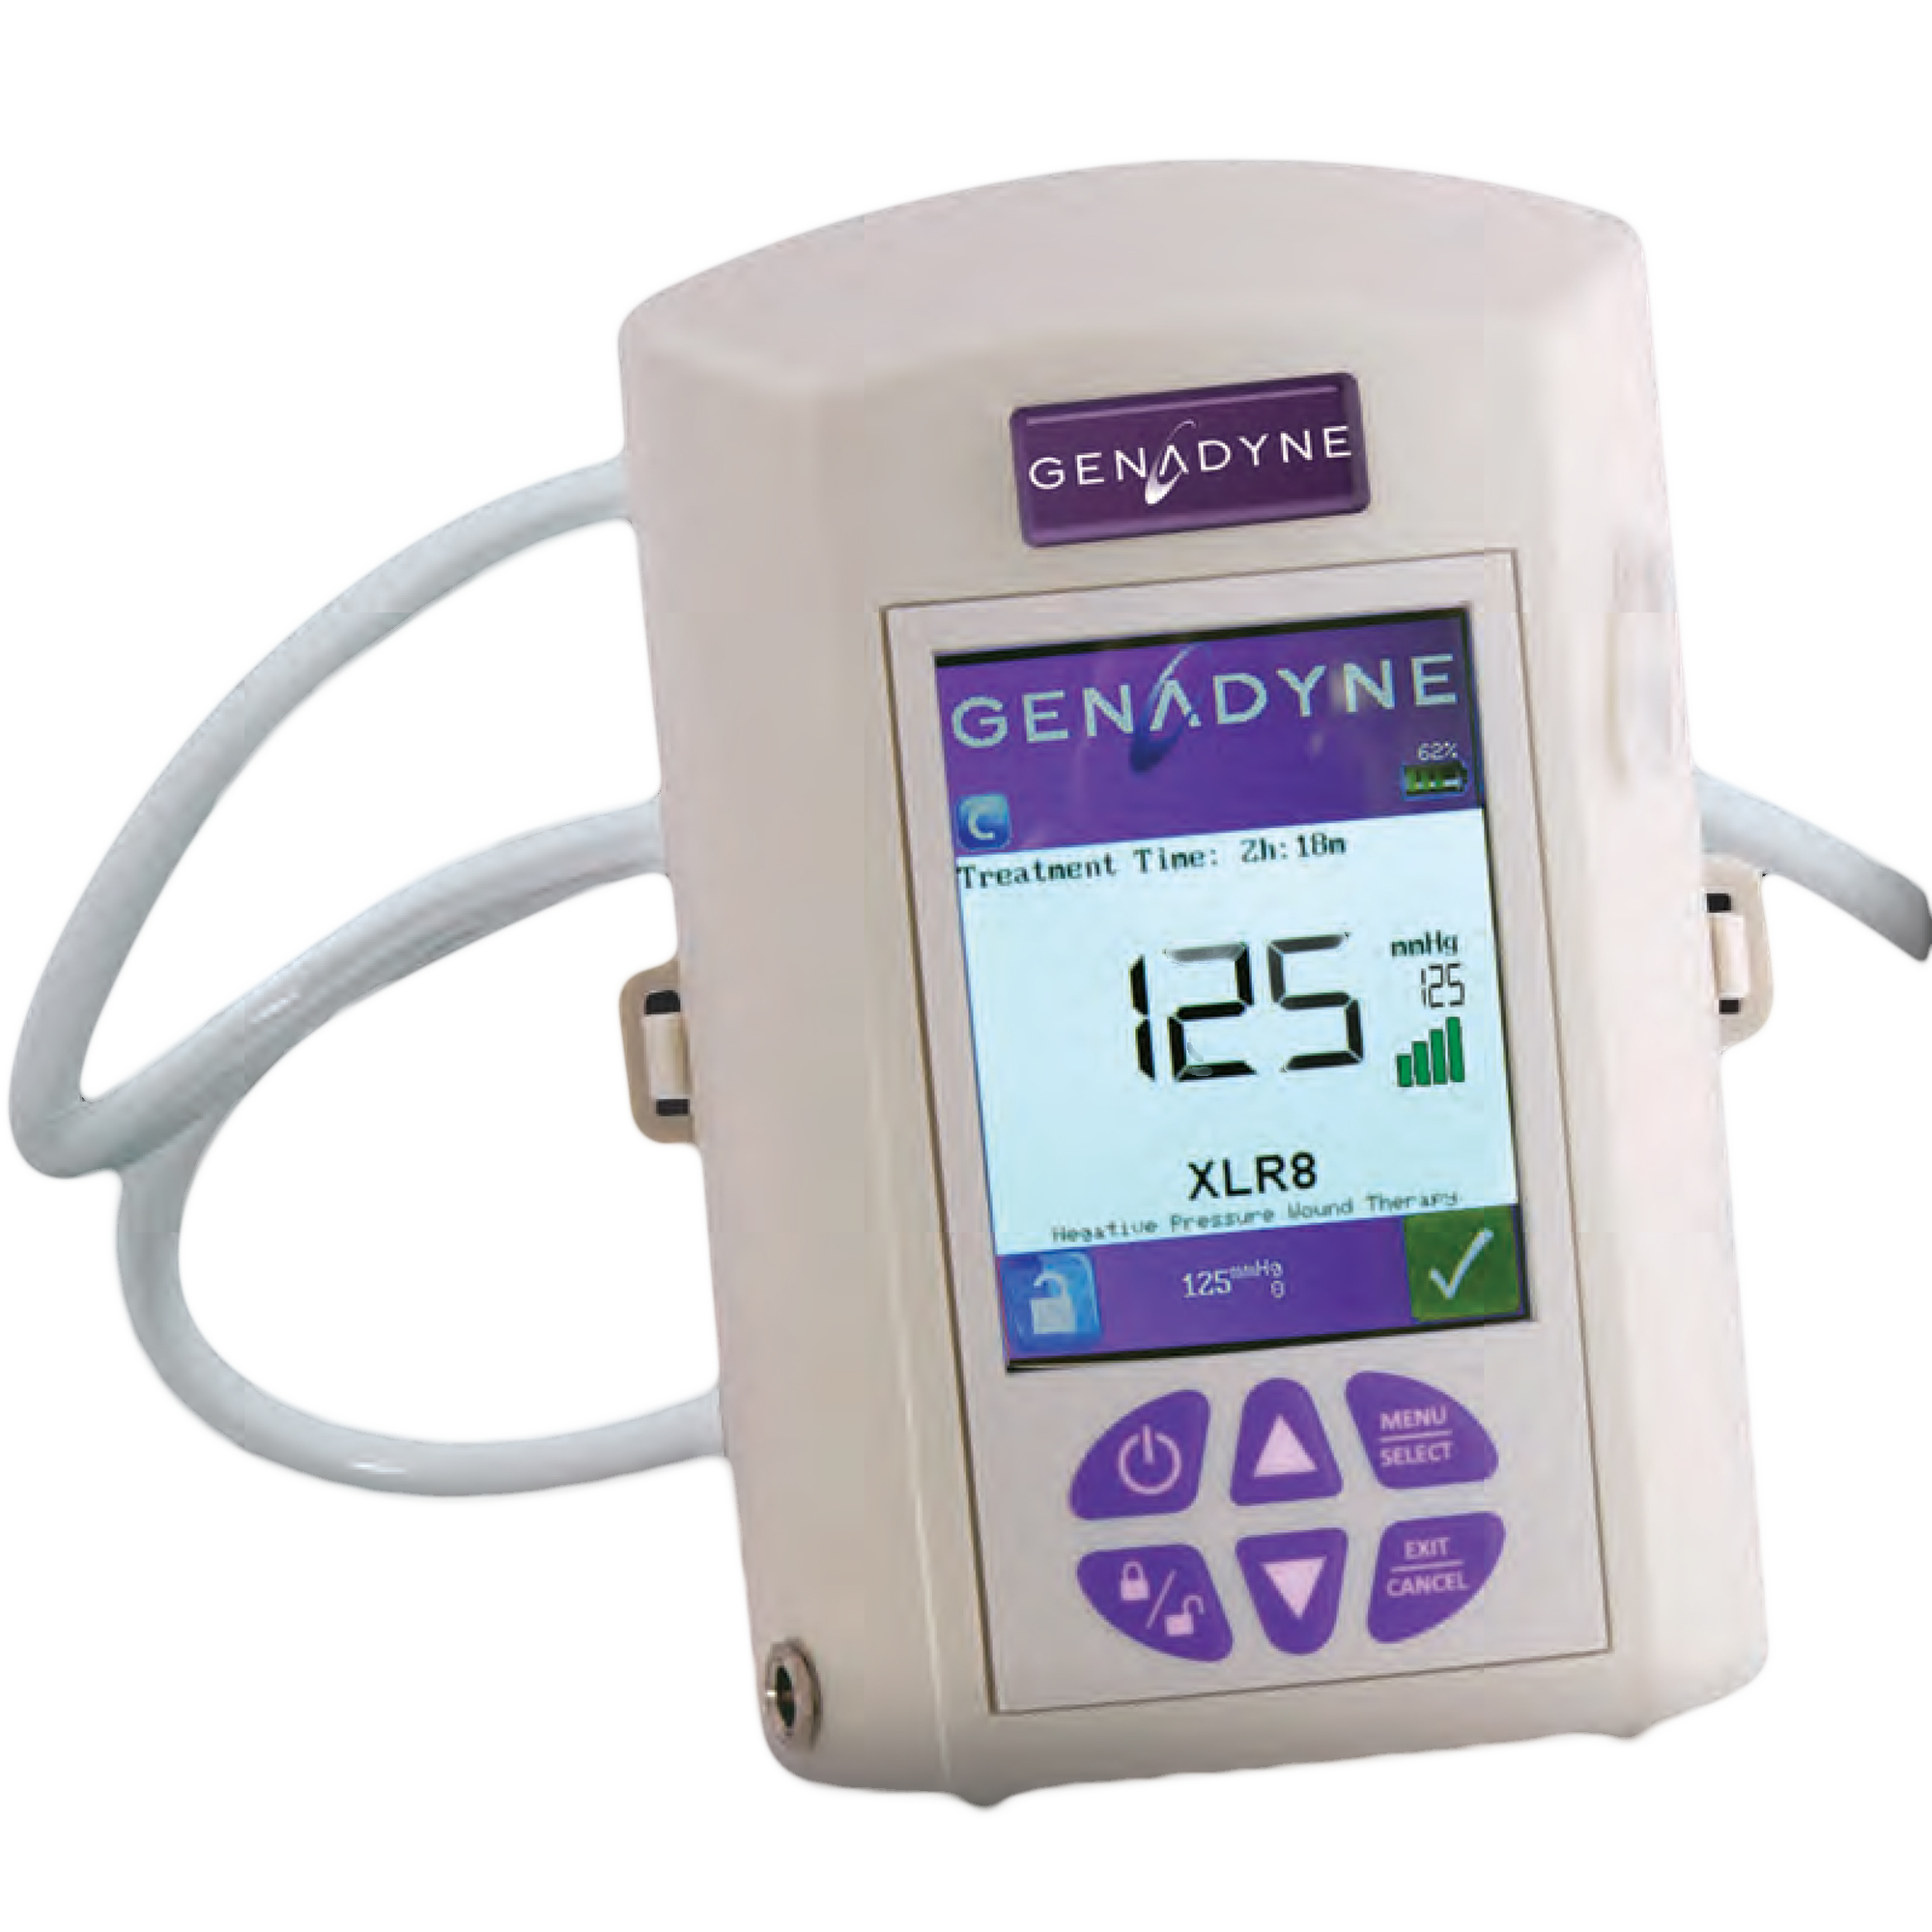 Genadyne XLR 8 Wound Vacuum | The Negative Pressure Therapy Store